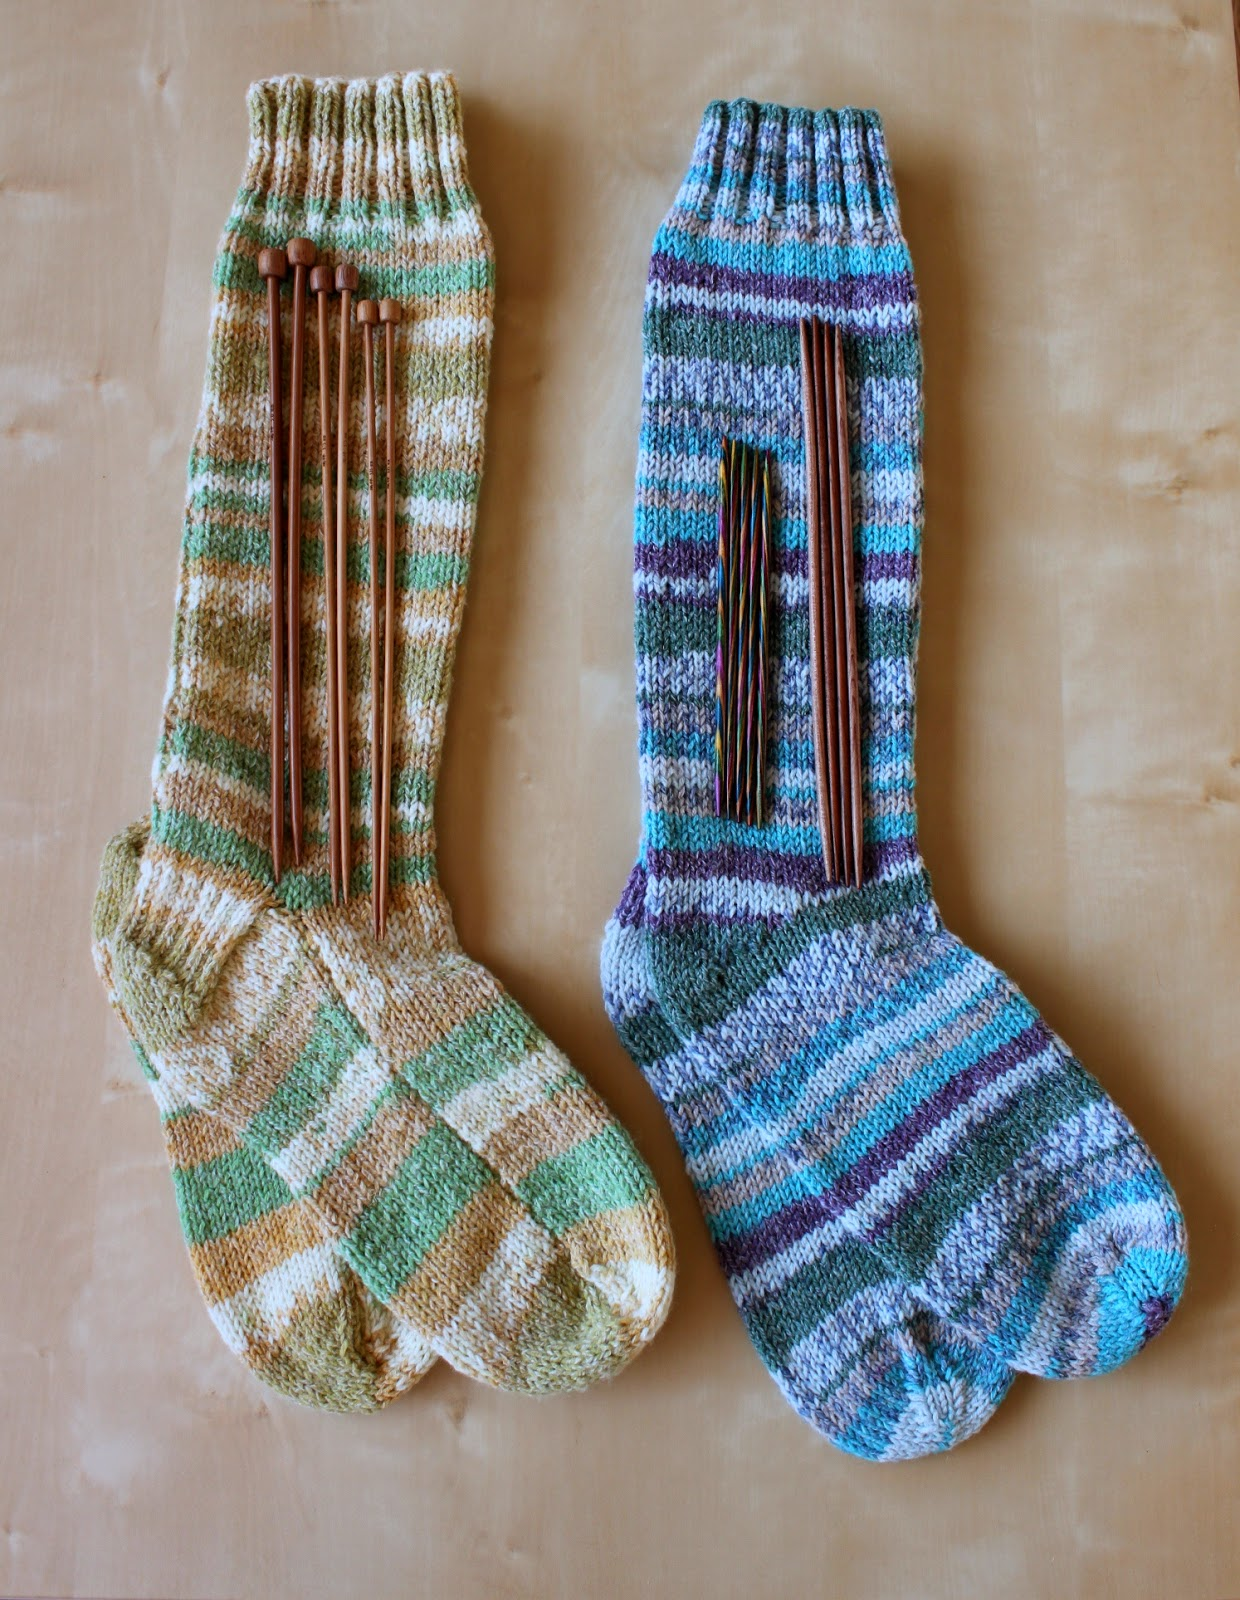 Hand Knitted Things: Sirdar Crofter DK Socks on Straight ...